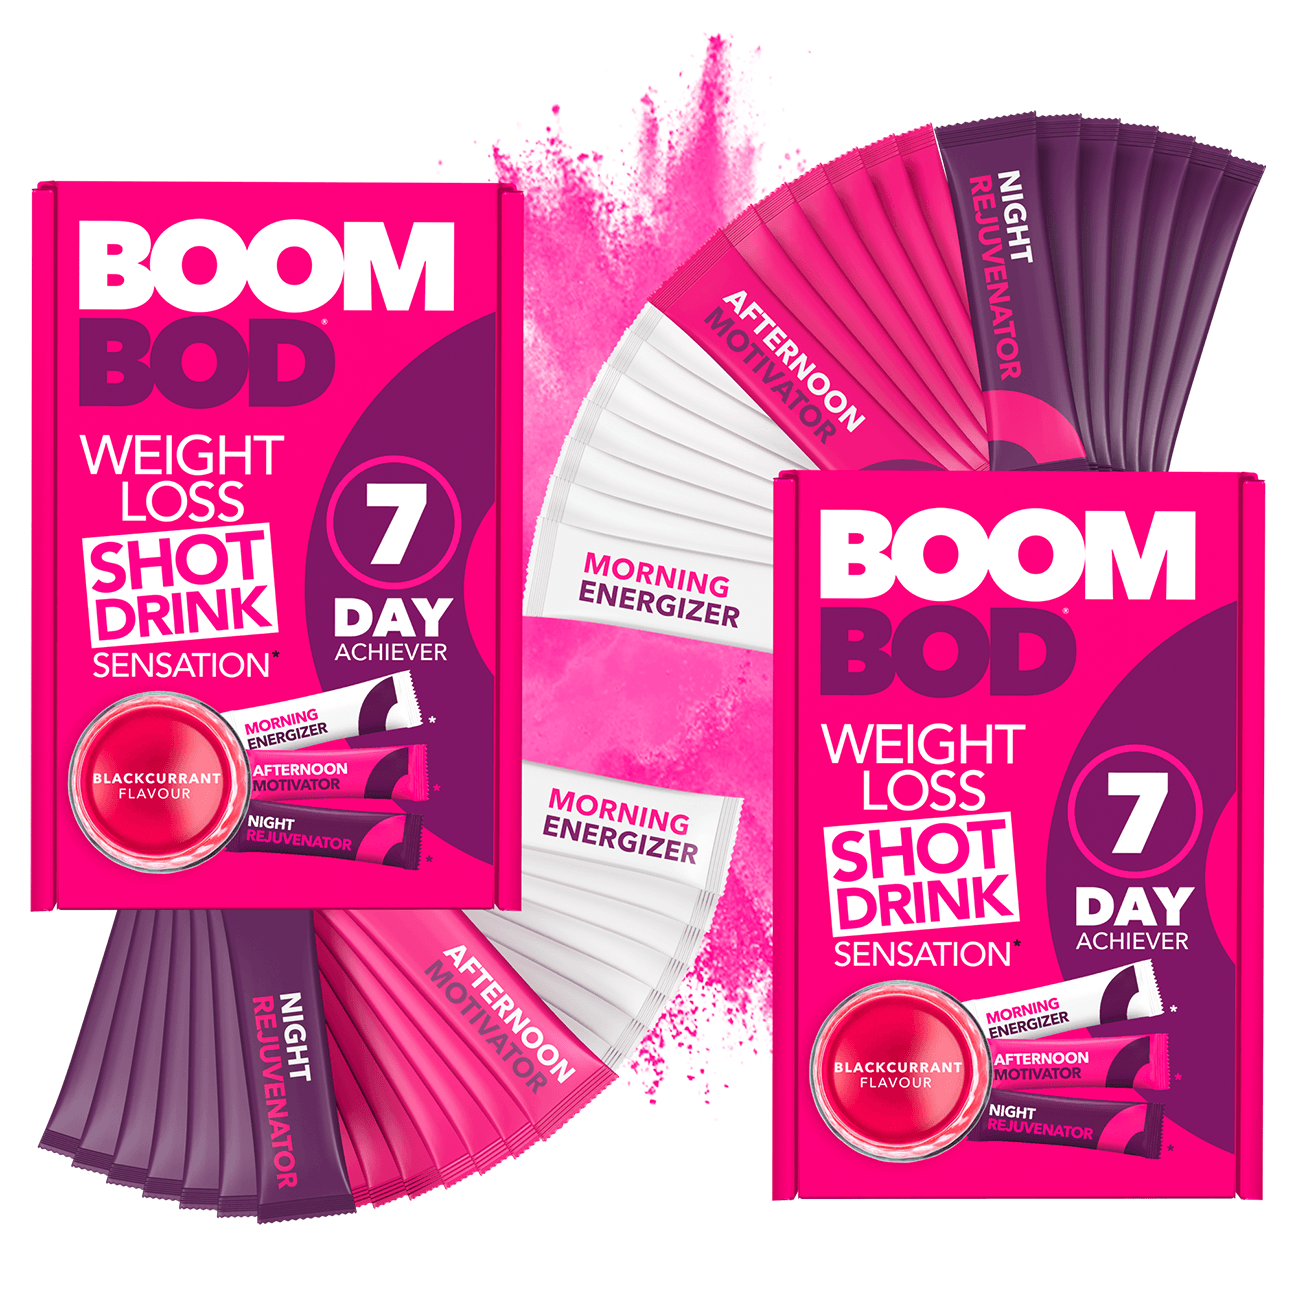 Boombod 14 Day Achiever | Blackcurrant | Weight Loss Shot Drink